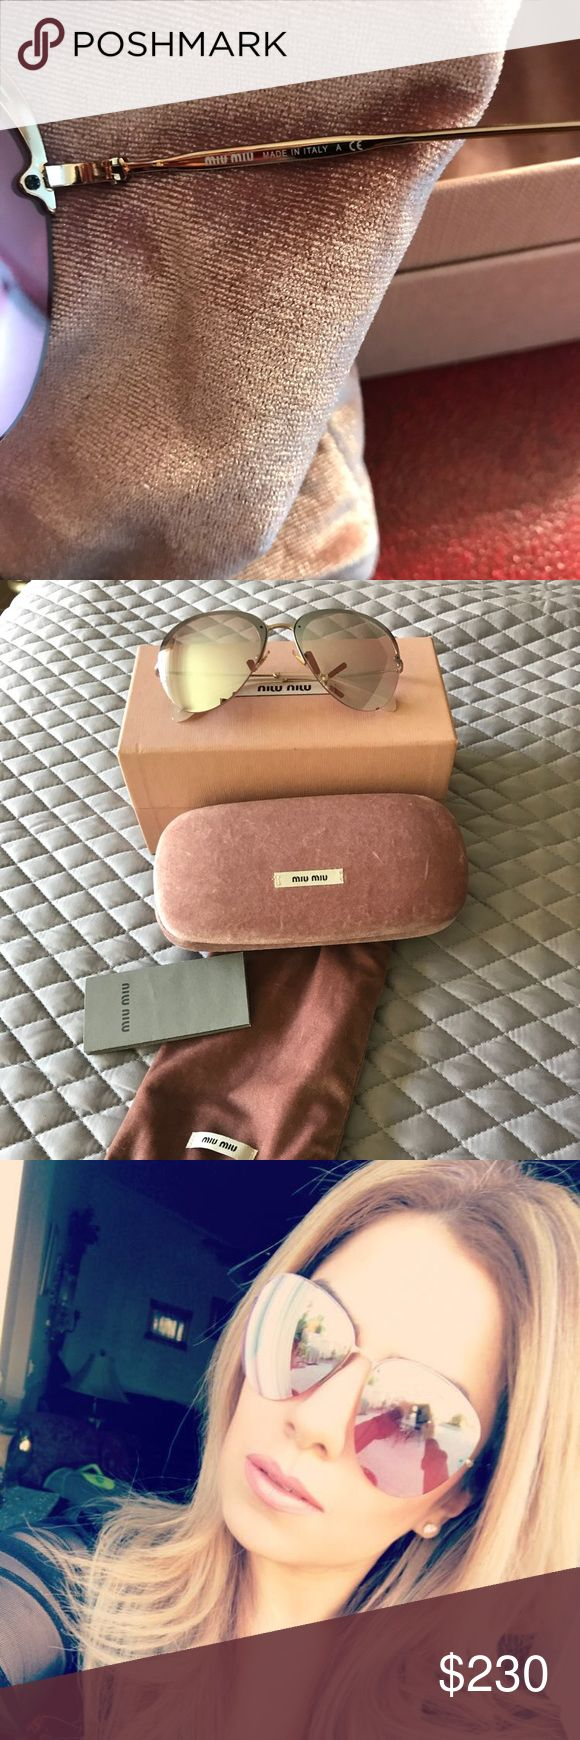 Miu Miu SMU 53P Womens Aviator Sunglasses BRAND: MIU MIU MODEL: SMU 53P ZVN-2D2 CONDITION: BRAND NEW WITH ORIGINAL MIU MIU HARD PINK CASE, DUSTY BAG, AND CLEANING CLOTH SIZE: 60/15/140 MM COLOR CODE: 3N ( ANTIQUE GOLD FRAME MATERIAL: METAL & PLASTIC  FRAME COLOR: PALE GOLD FRAME SHAPE: AVIATOR LENS COLOR: LIGHT PINK GOLD MIRROR LENS TECHNOLOGY : MIRRORED GENDER: WOMEN COUNTRY OF MANUFACTURE: ITALY Miu Miu Accessories Sunglasses